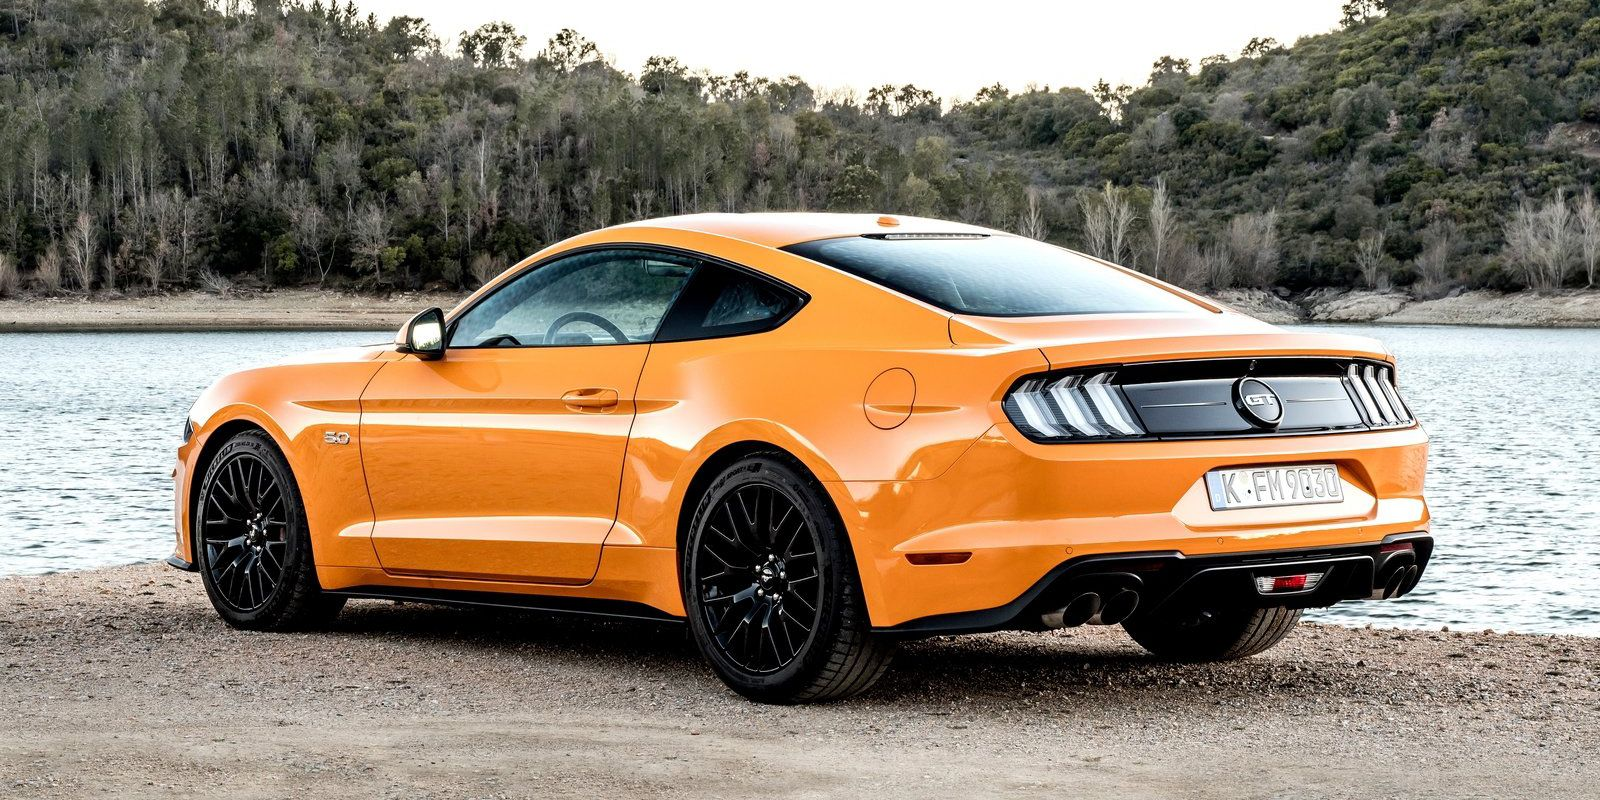 2018 ford mustang gt engine coyote 5 0 v8 specs